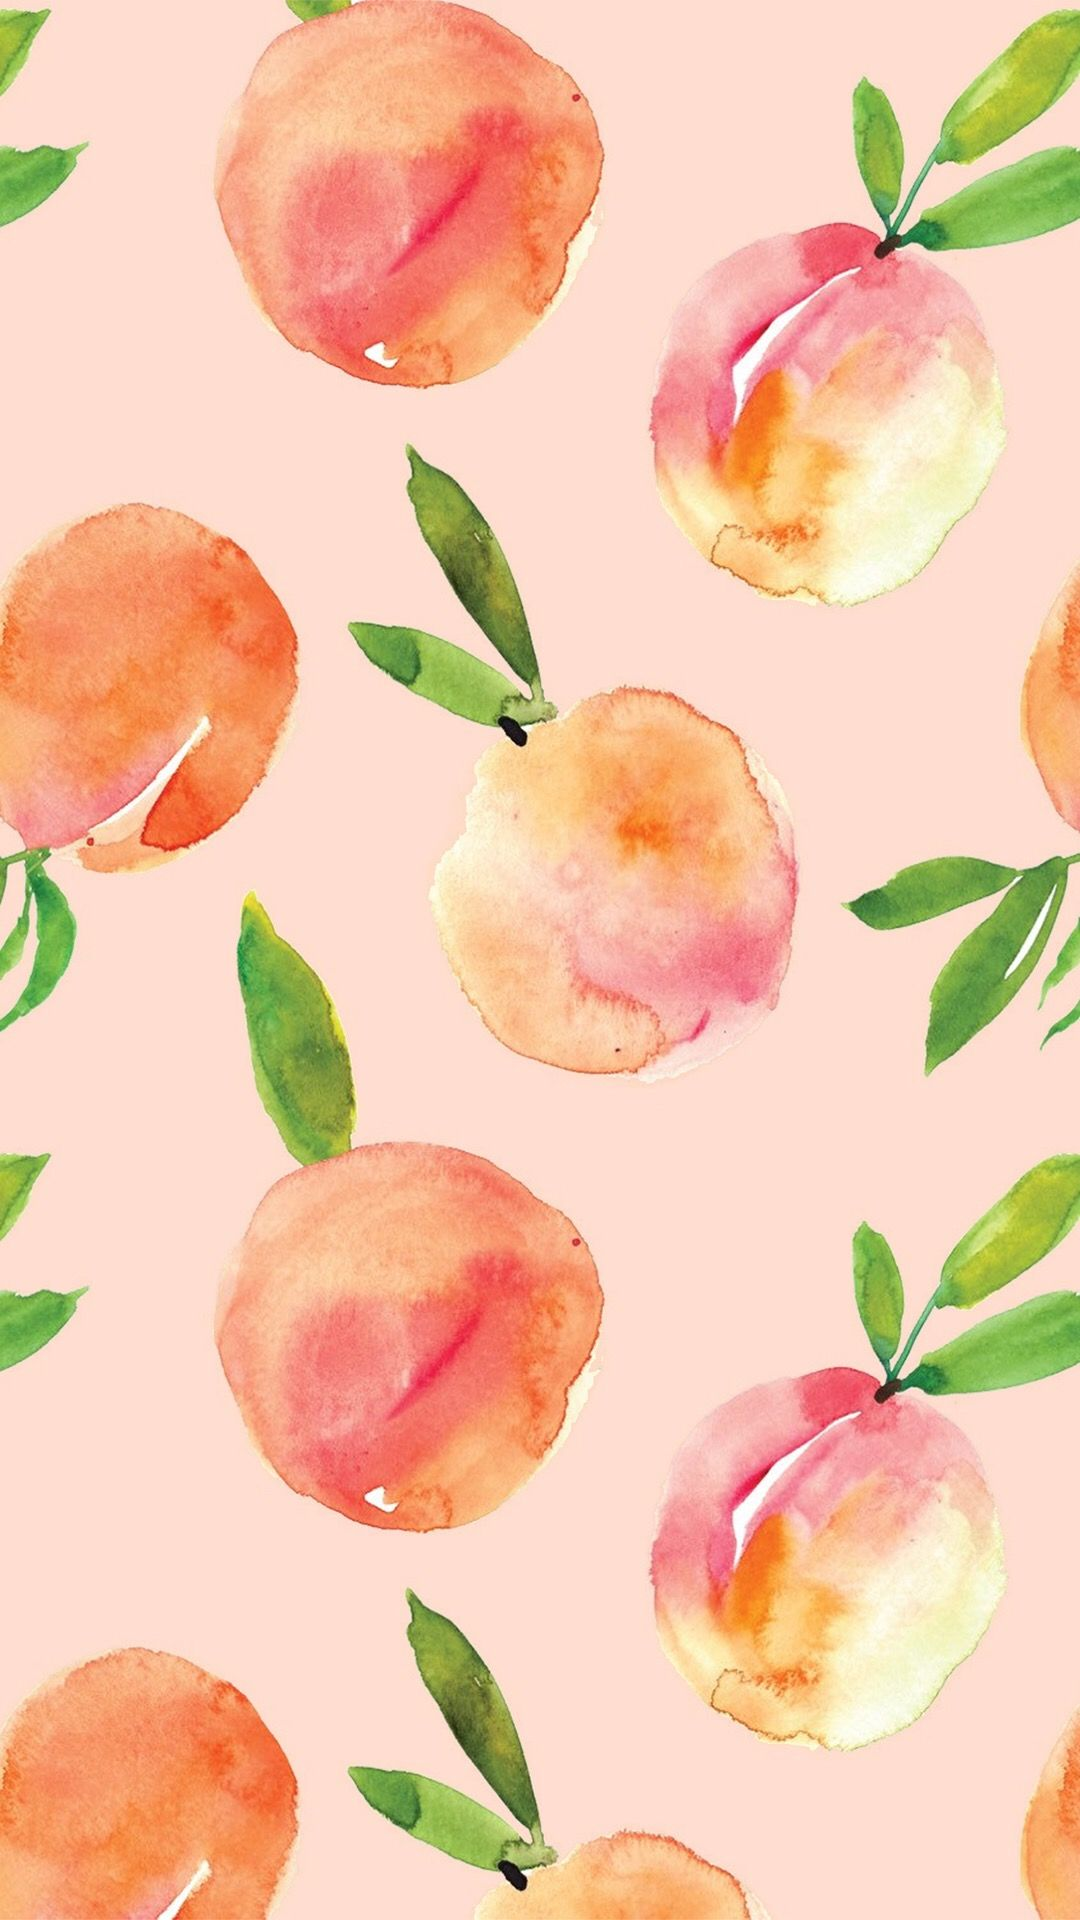 peach print water colour pattern fruit wallpaper iphone summer peach wallpaper watercolor wallpaper peach print water colour pattern